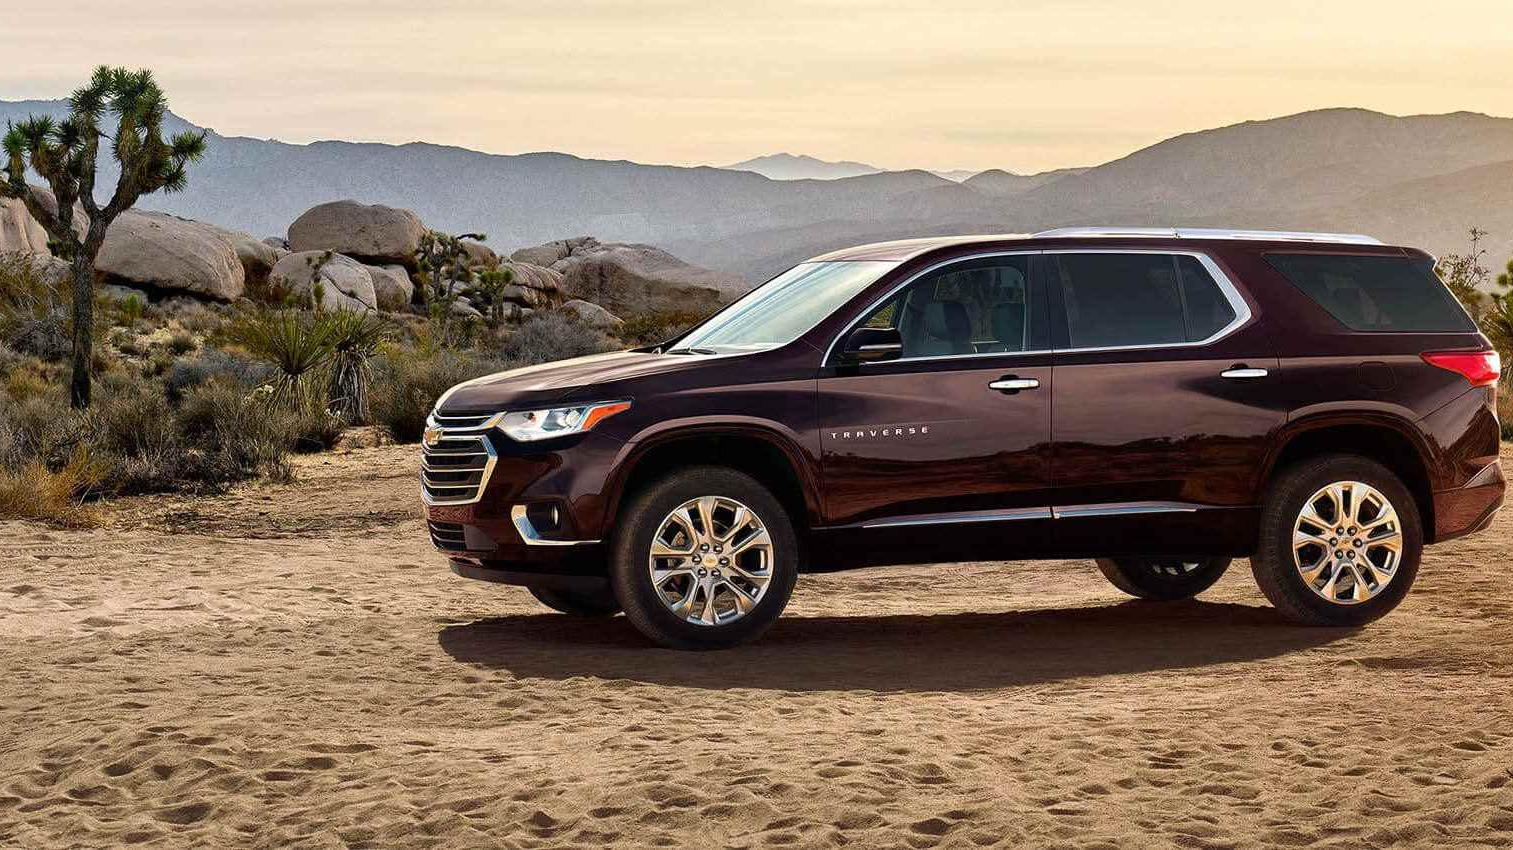 The New Chevy Traverse for Sale